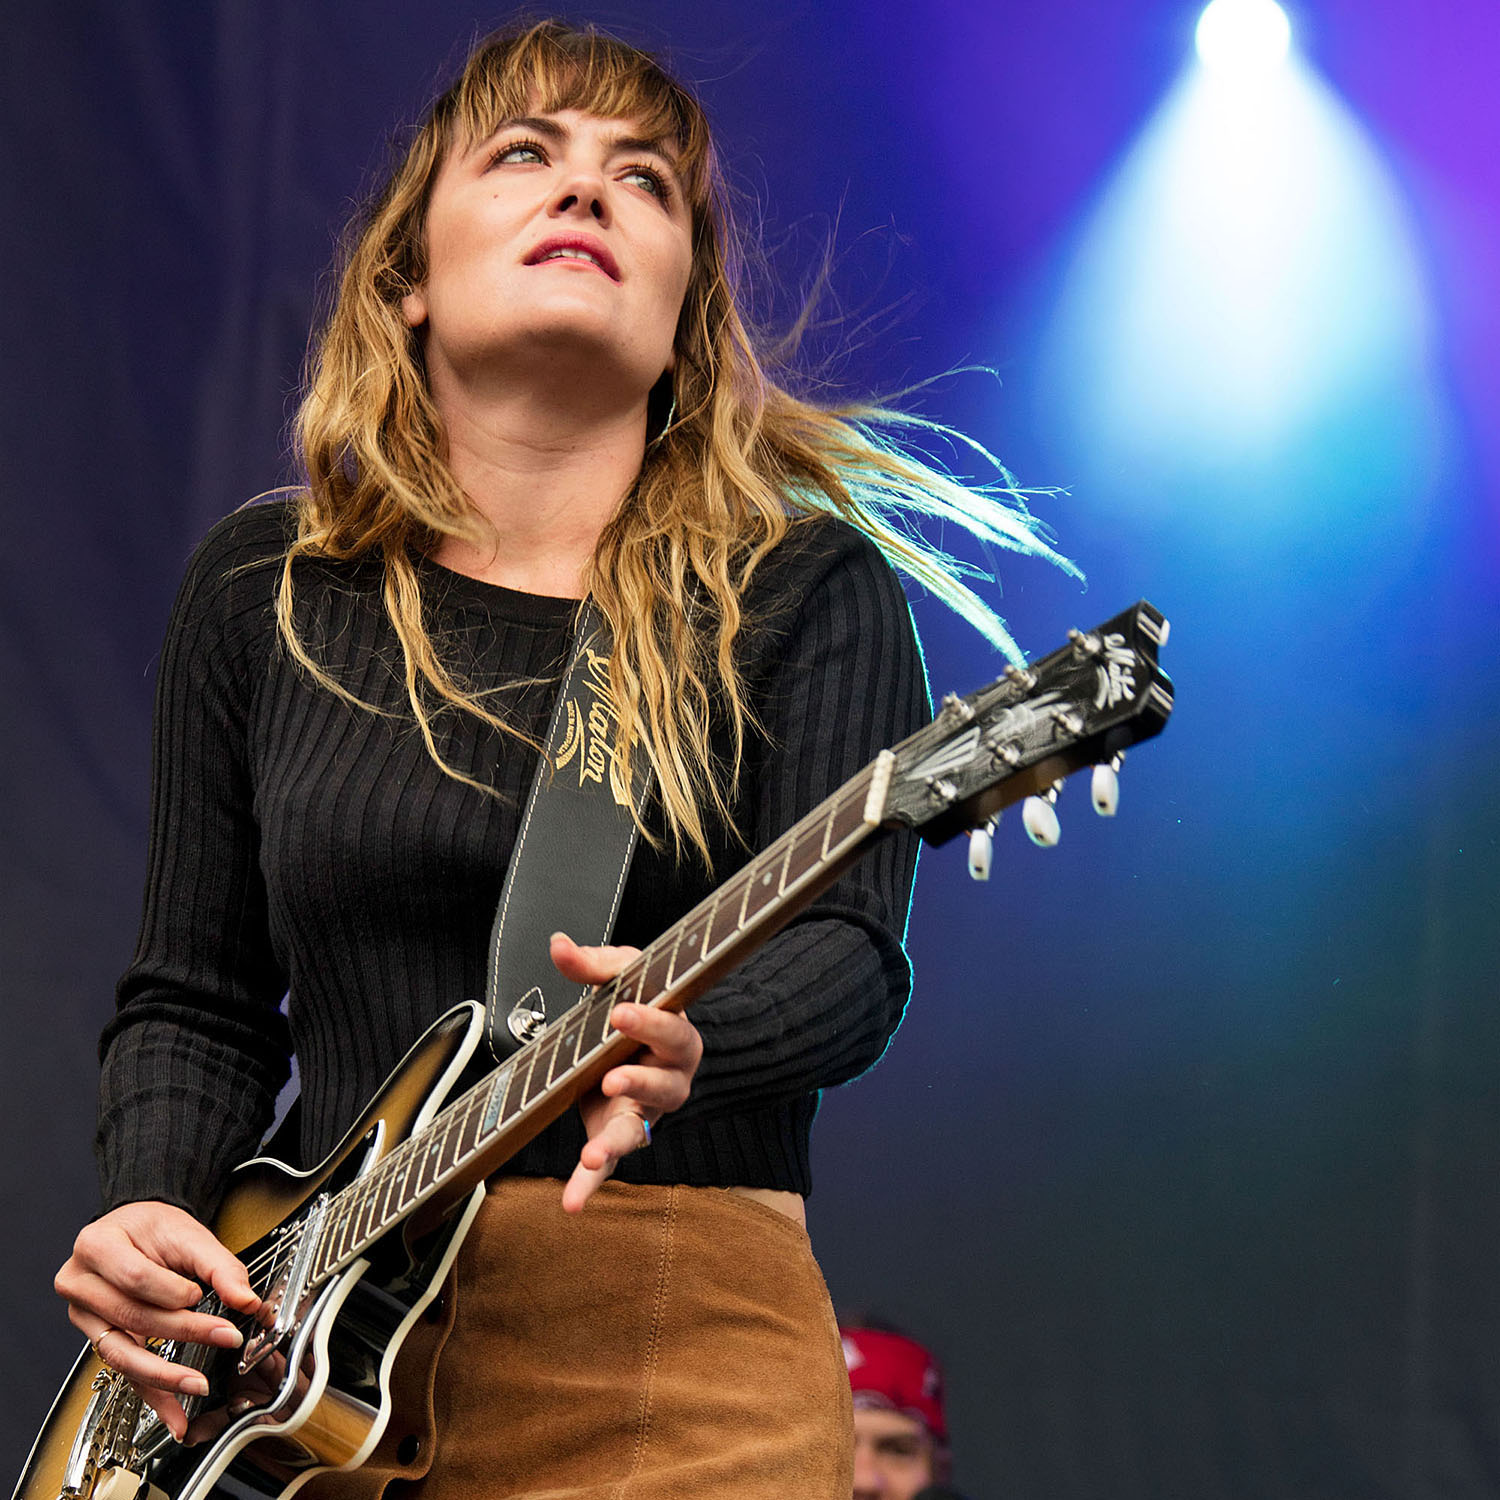 Julia Stone playing guitar on stage